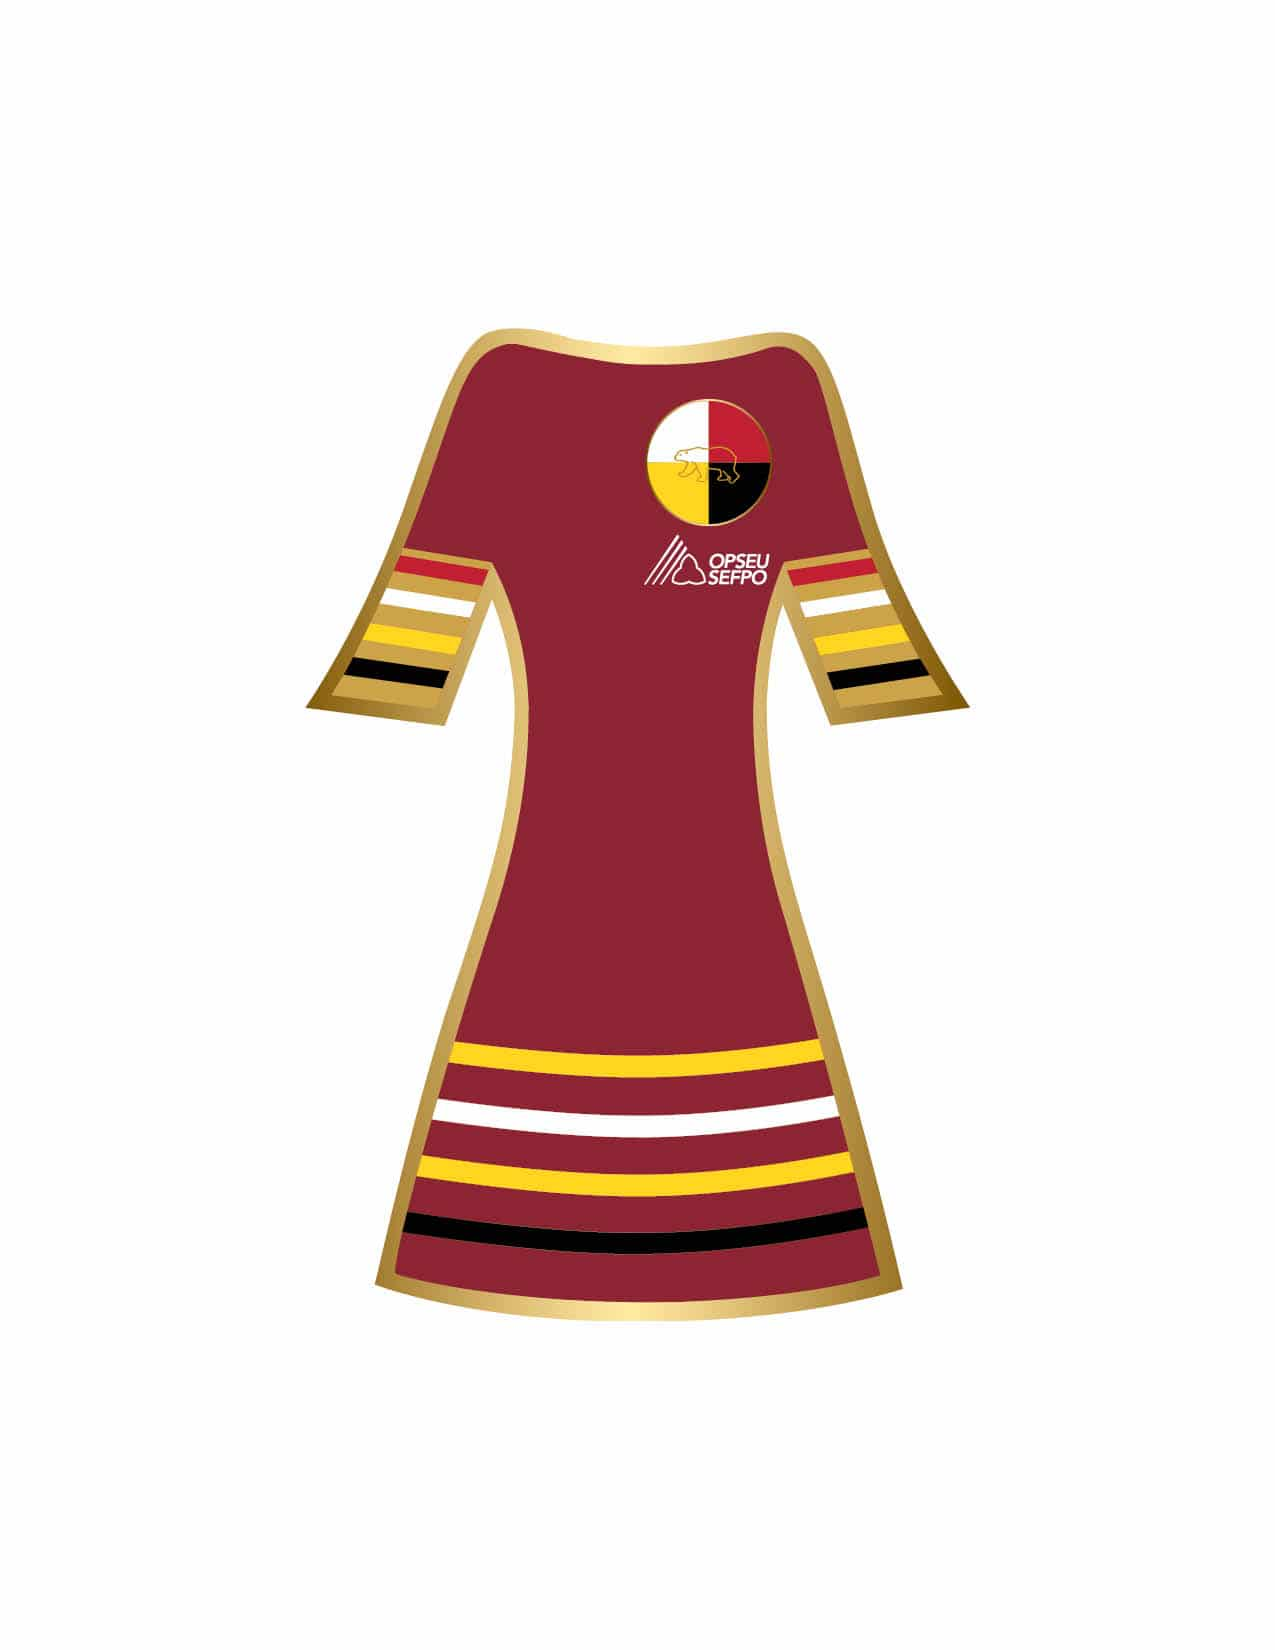 Illustration of a red dress with a Indigenous circle logo and an OPSEU SEFPO logo